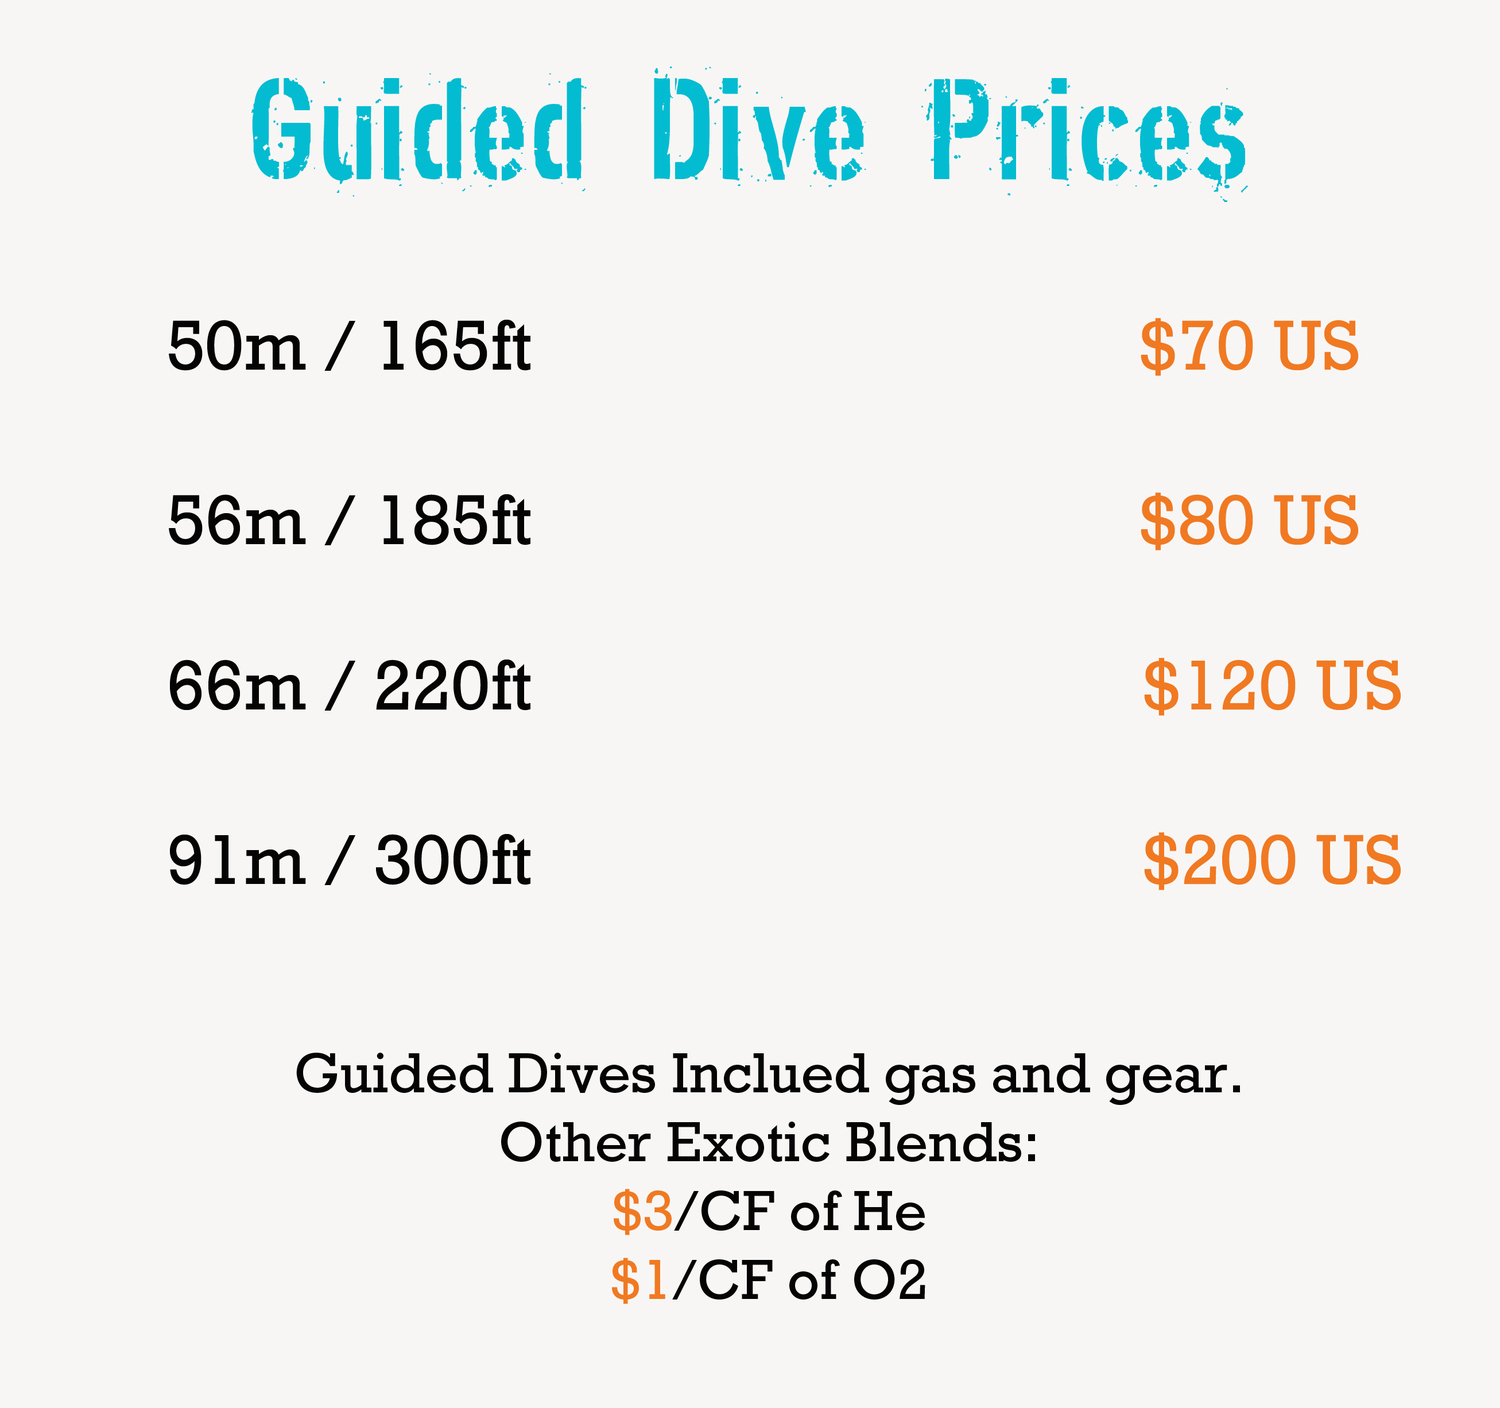 Prices for guided techncial dives with coconut tree divers boats, and nitrox filling stations.